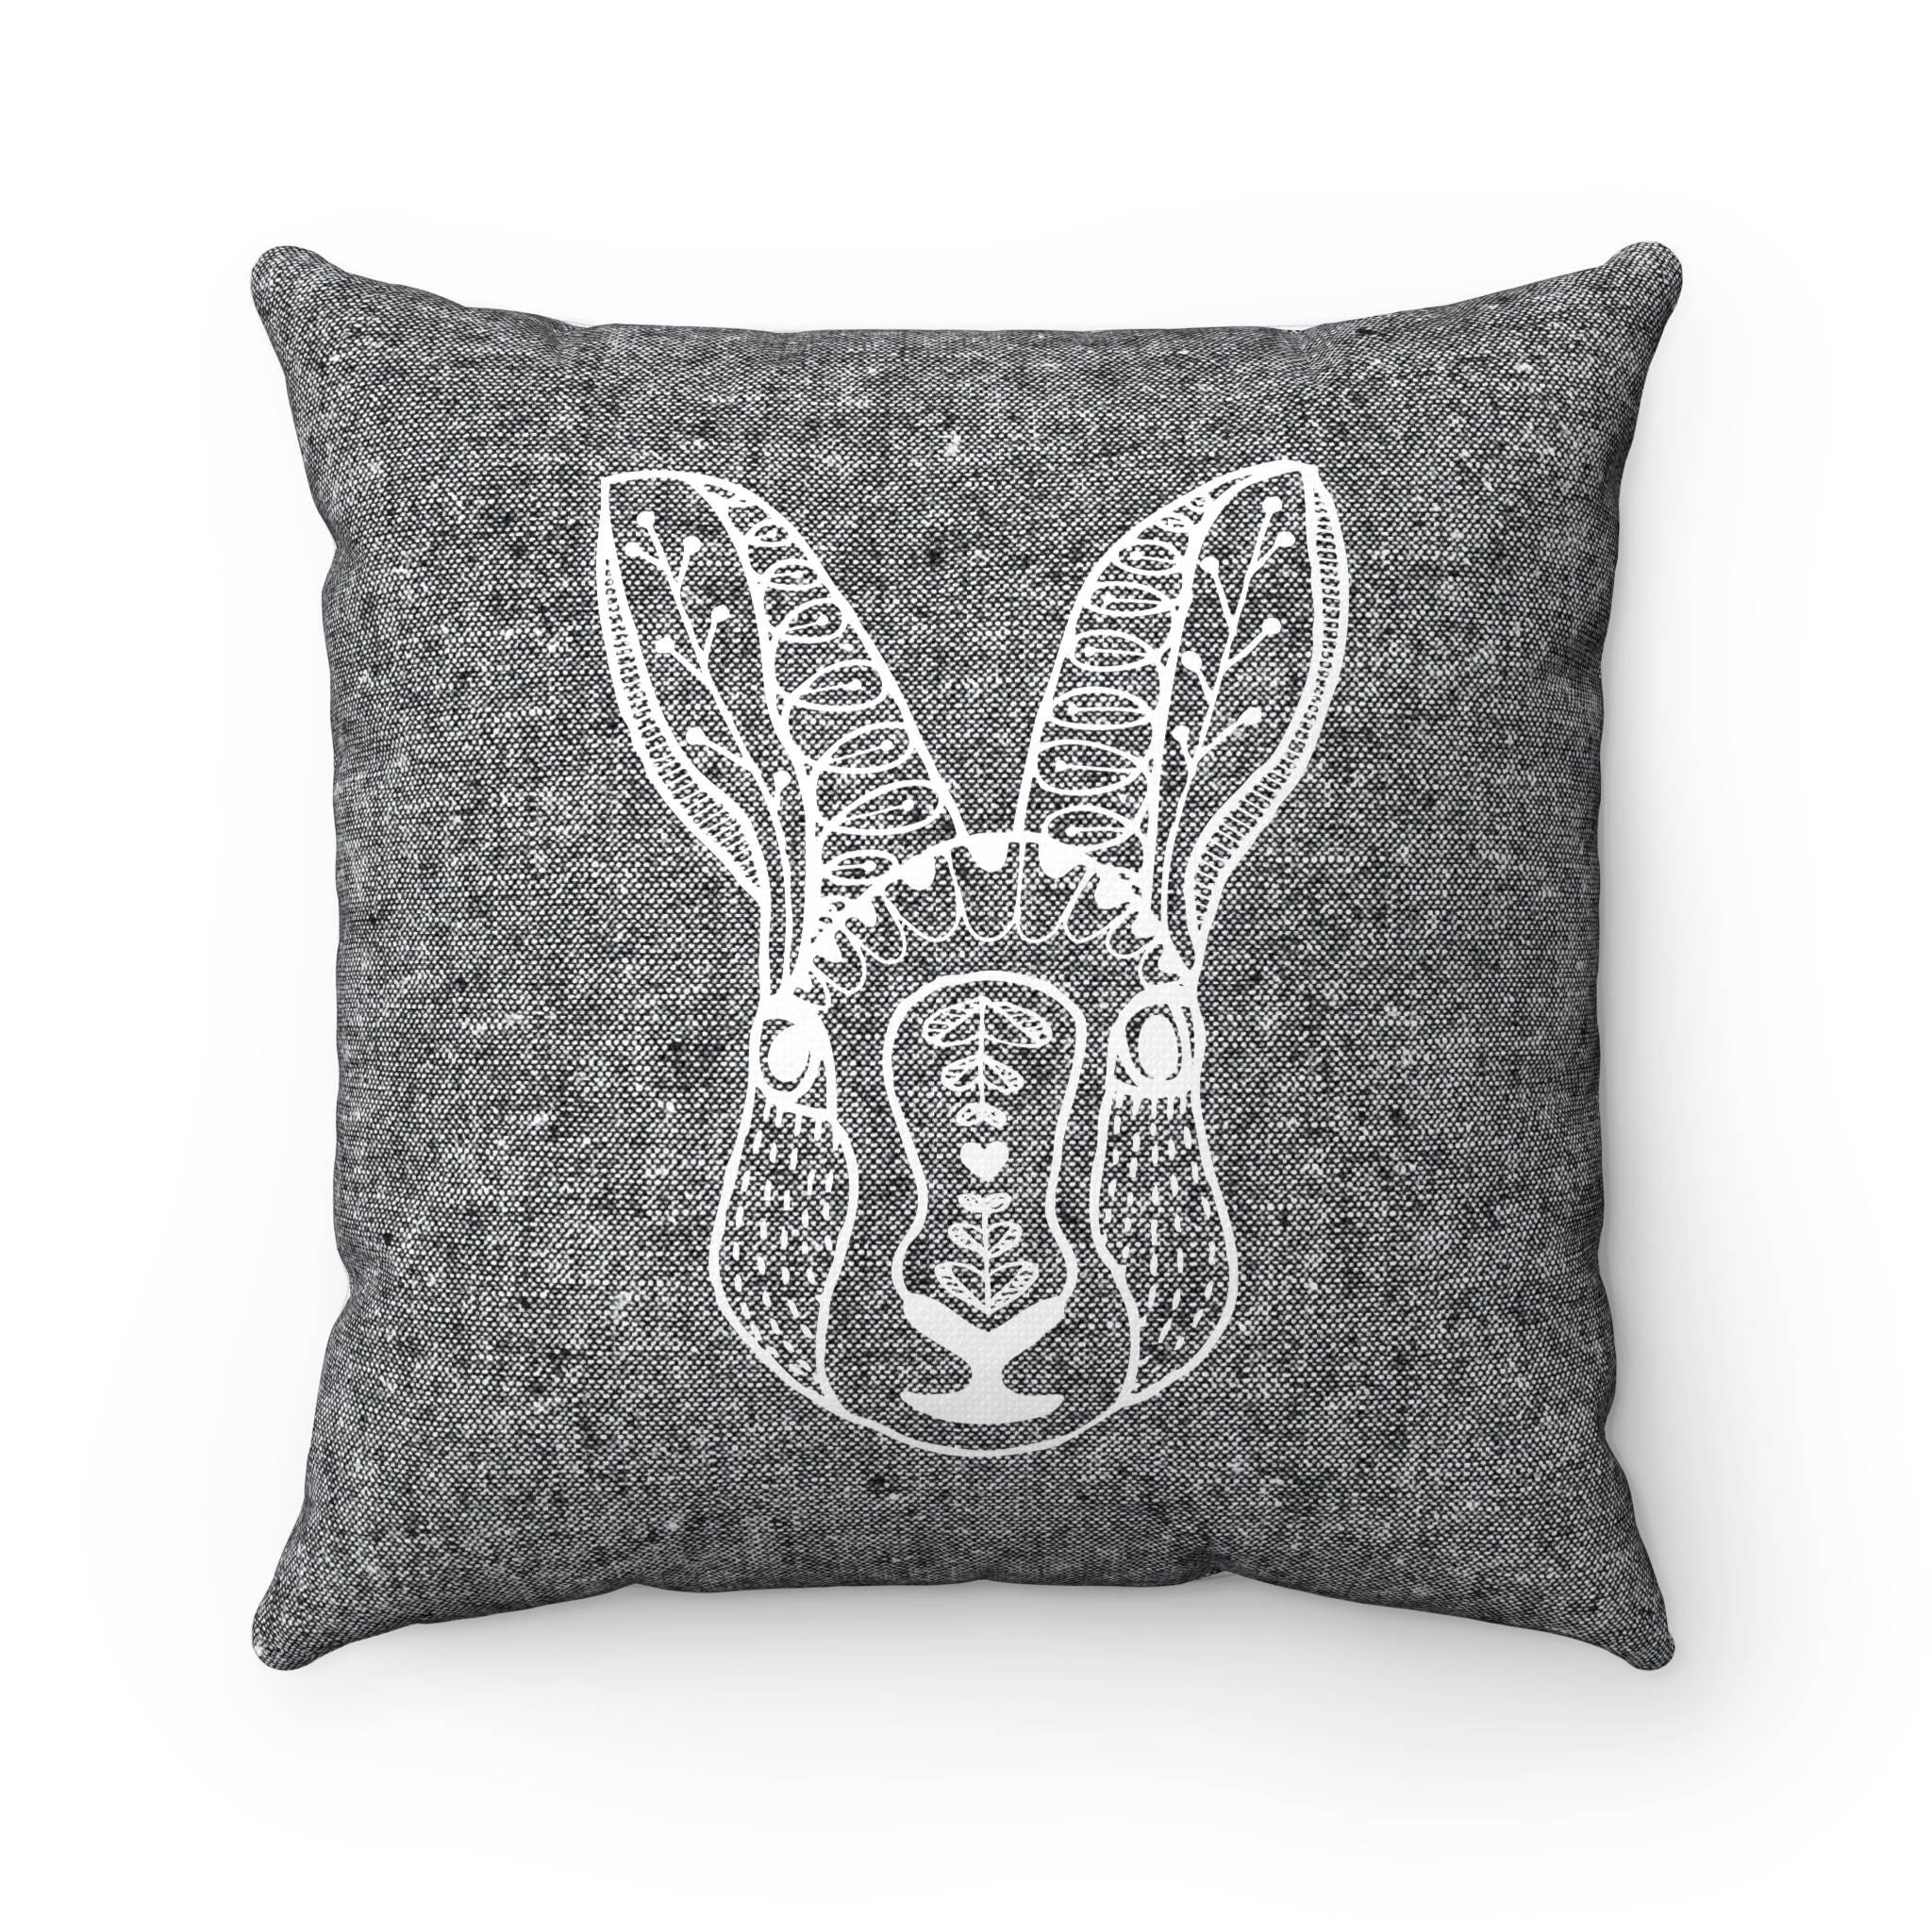 Coussin imprim lapin scandinave coussin housse de 14 etsy - Housse coussin rectangulaire scandinave ...